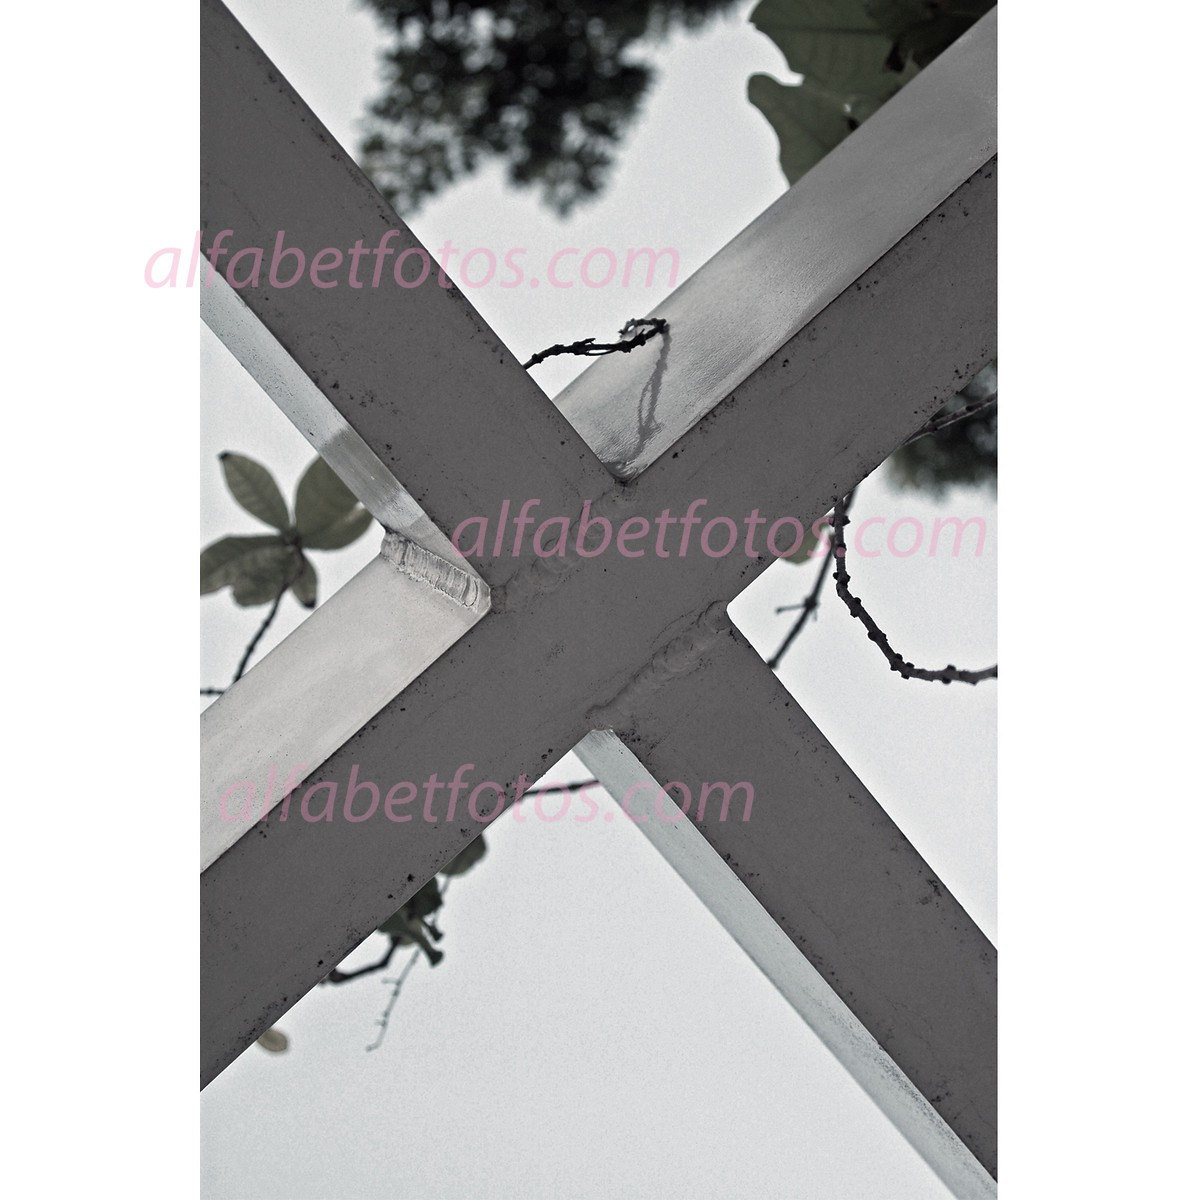 The Letter X in Alphabet Letter Photography 4X6 Individual Single Prints (unframed)